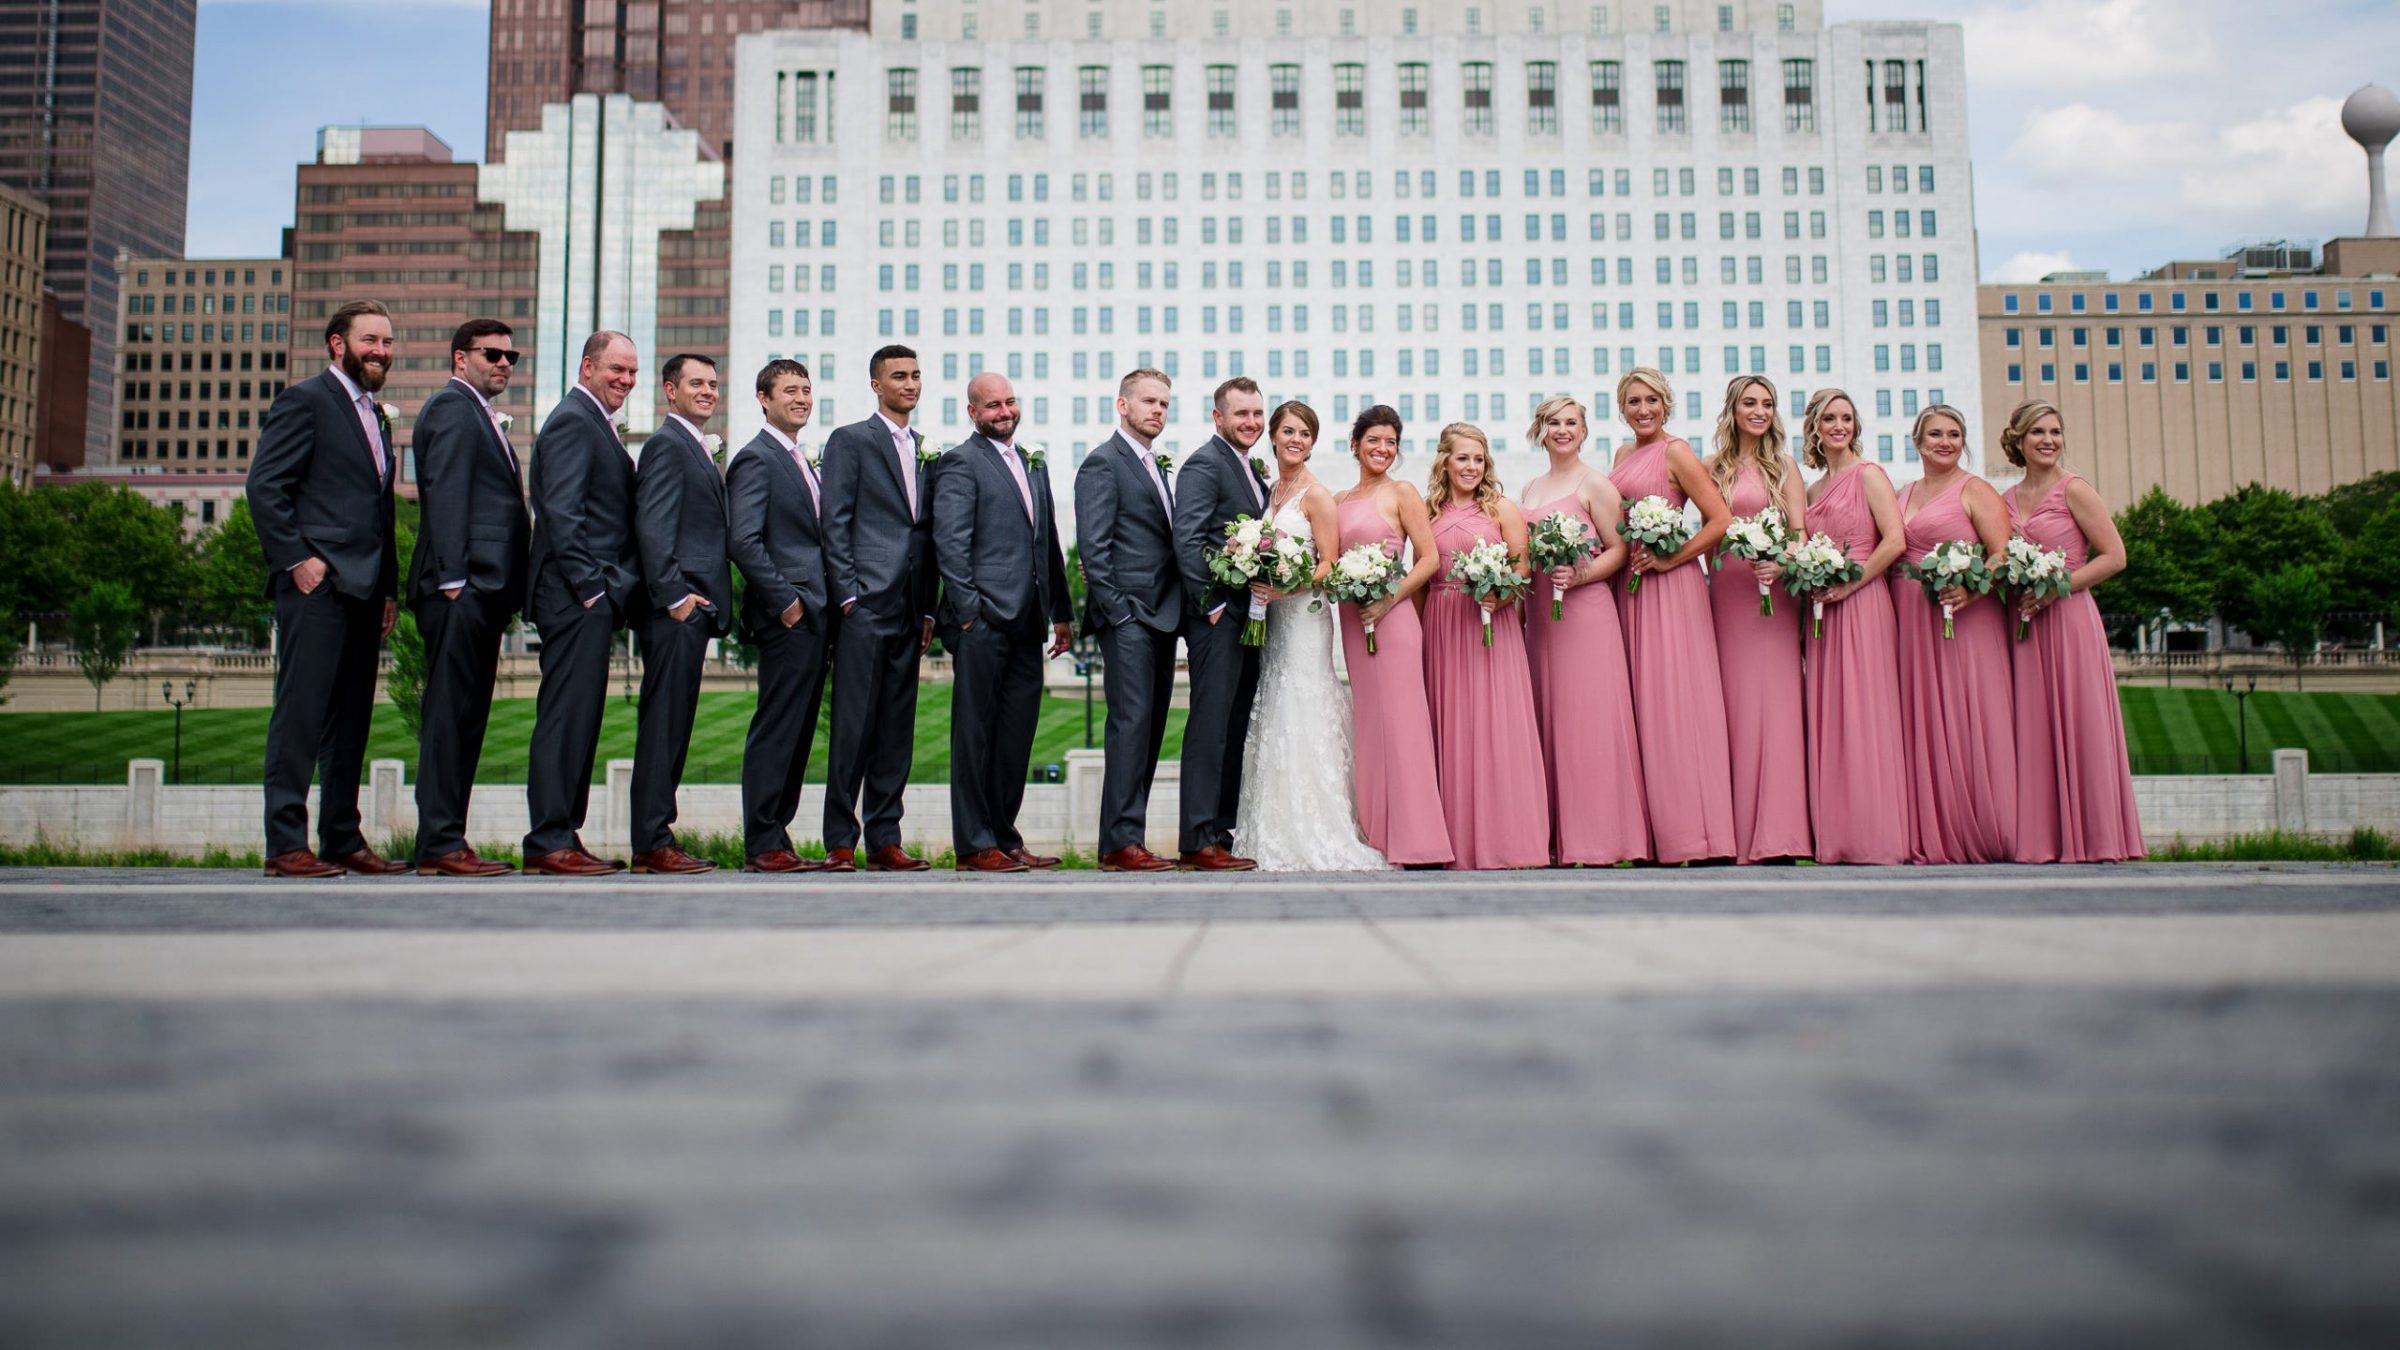 bride and groom with bridal party urban portrait